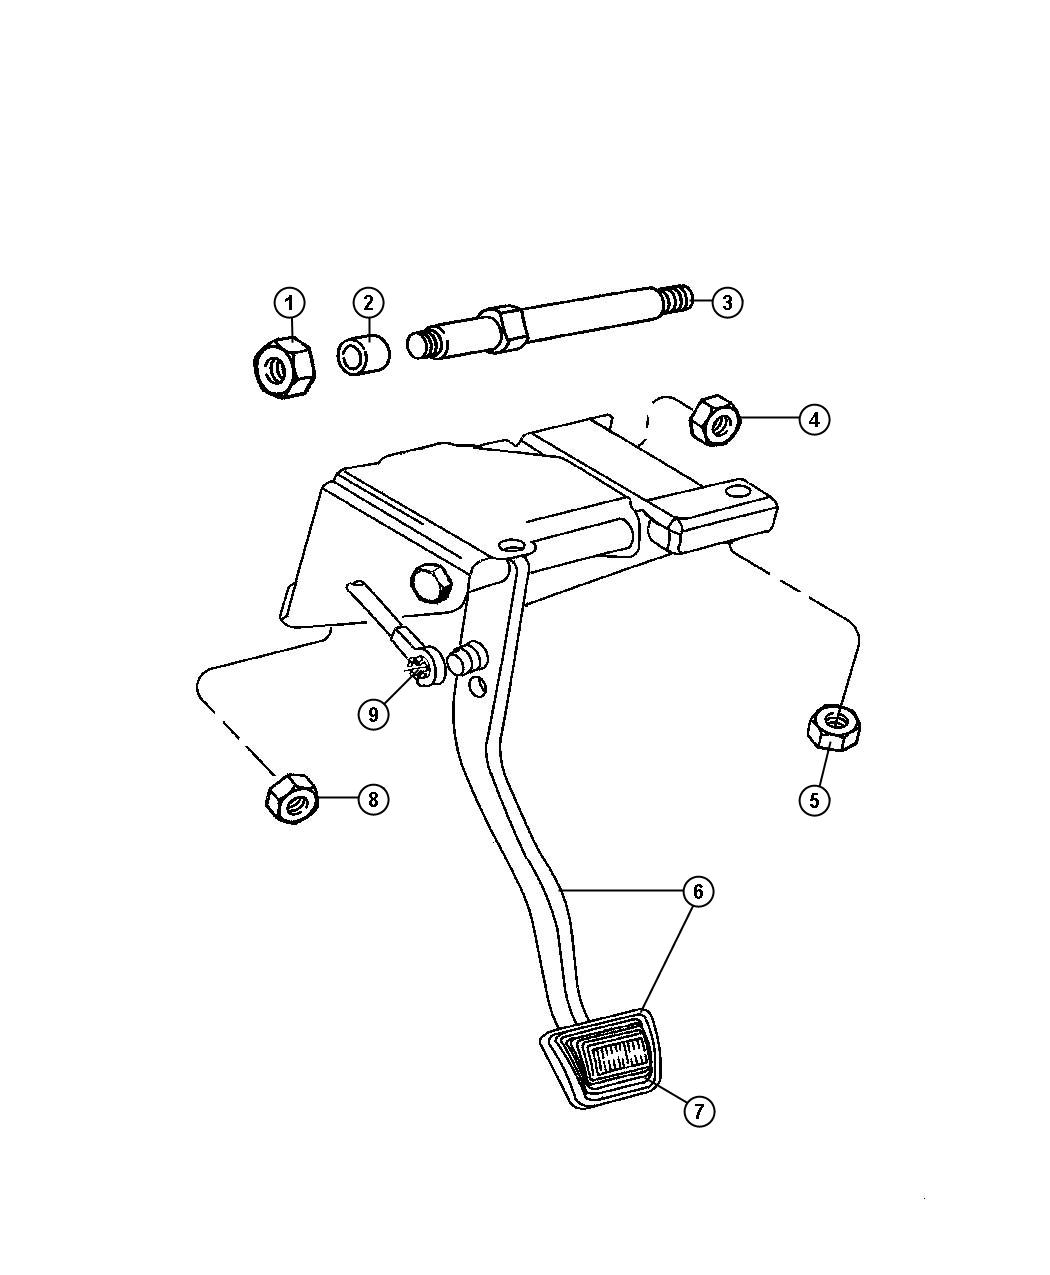 172257226202 besides Jeep Jk Subwoofer Wiring Diagram further 322248173475 in addition Audioupgrade further 361855756892. on jeep wrangler tj accessories